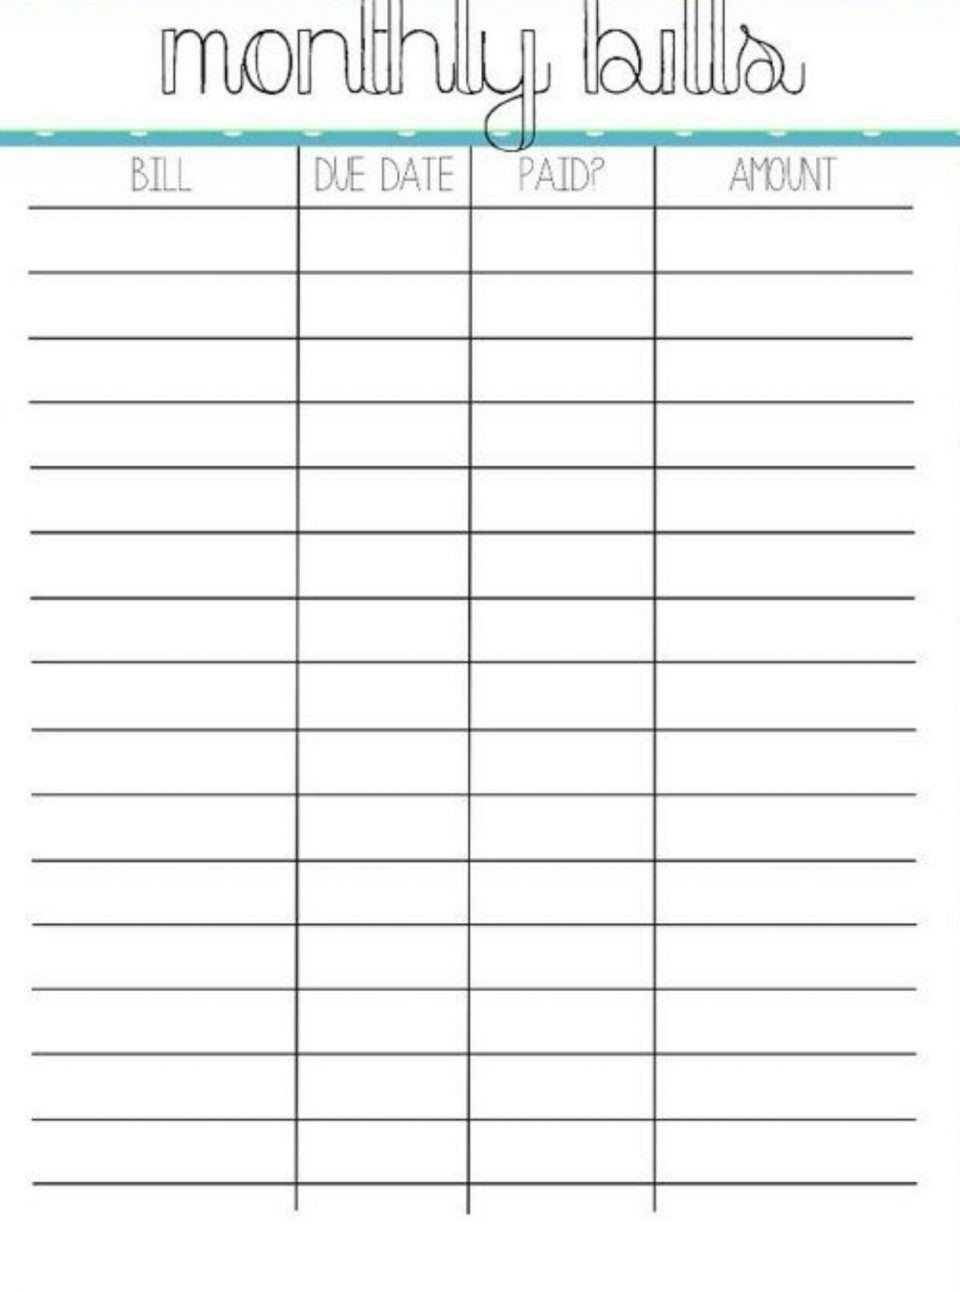 Monthly Bill Payment Worksheet Printable - Template